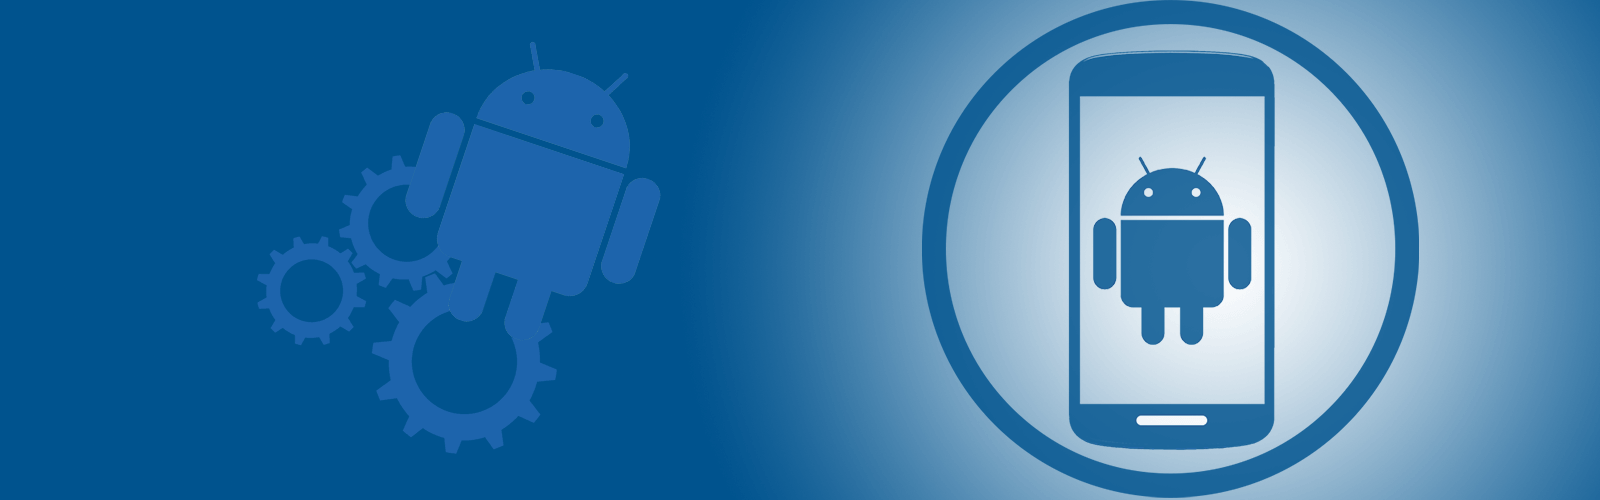 android-app-development-banner | The Couchbase Blog